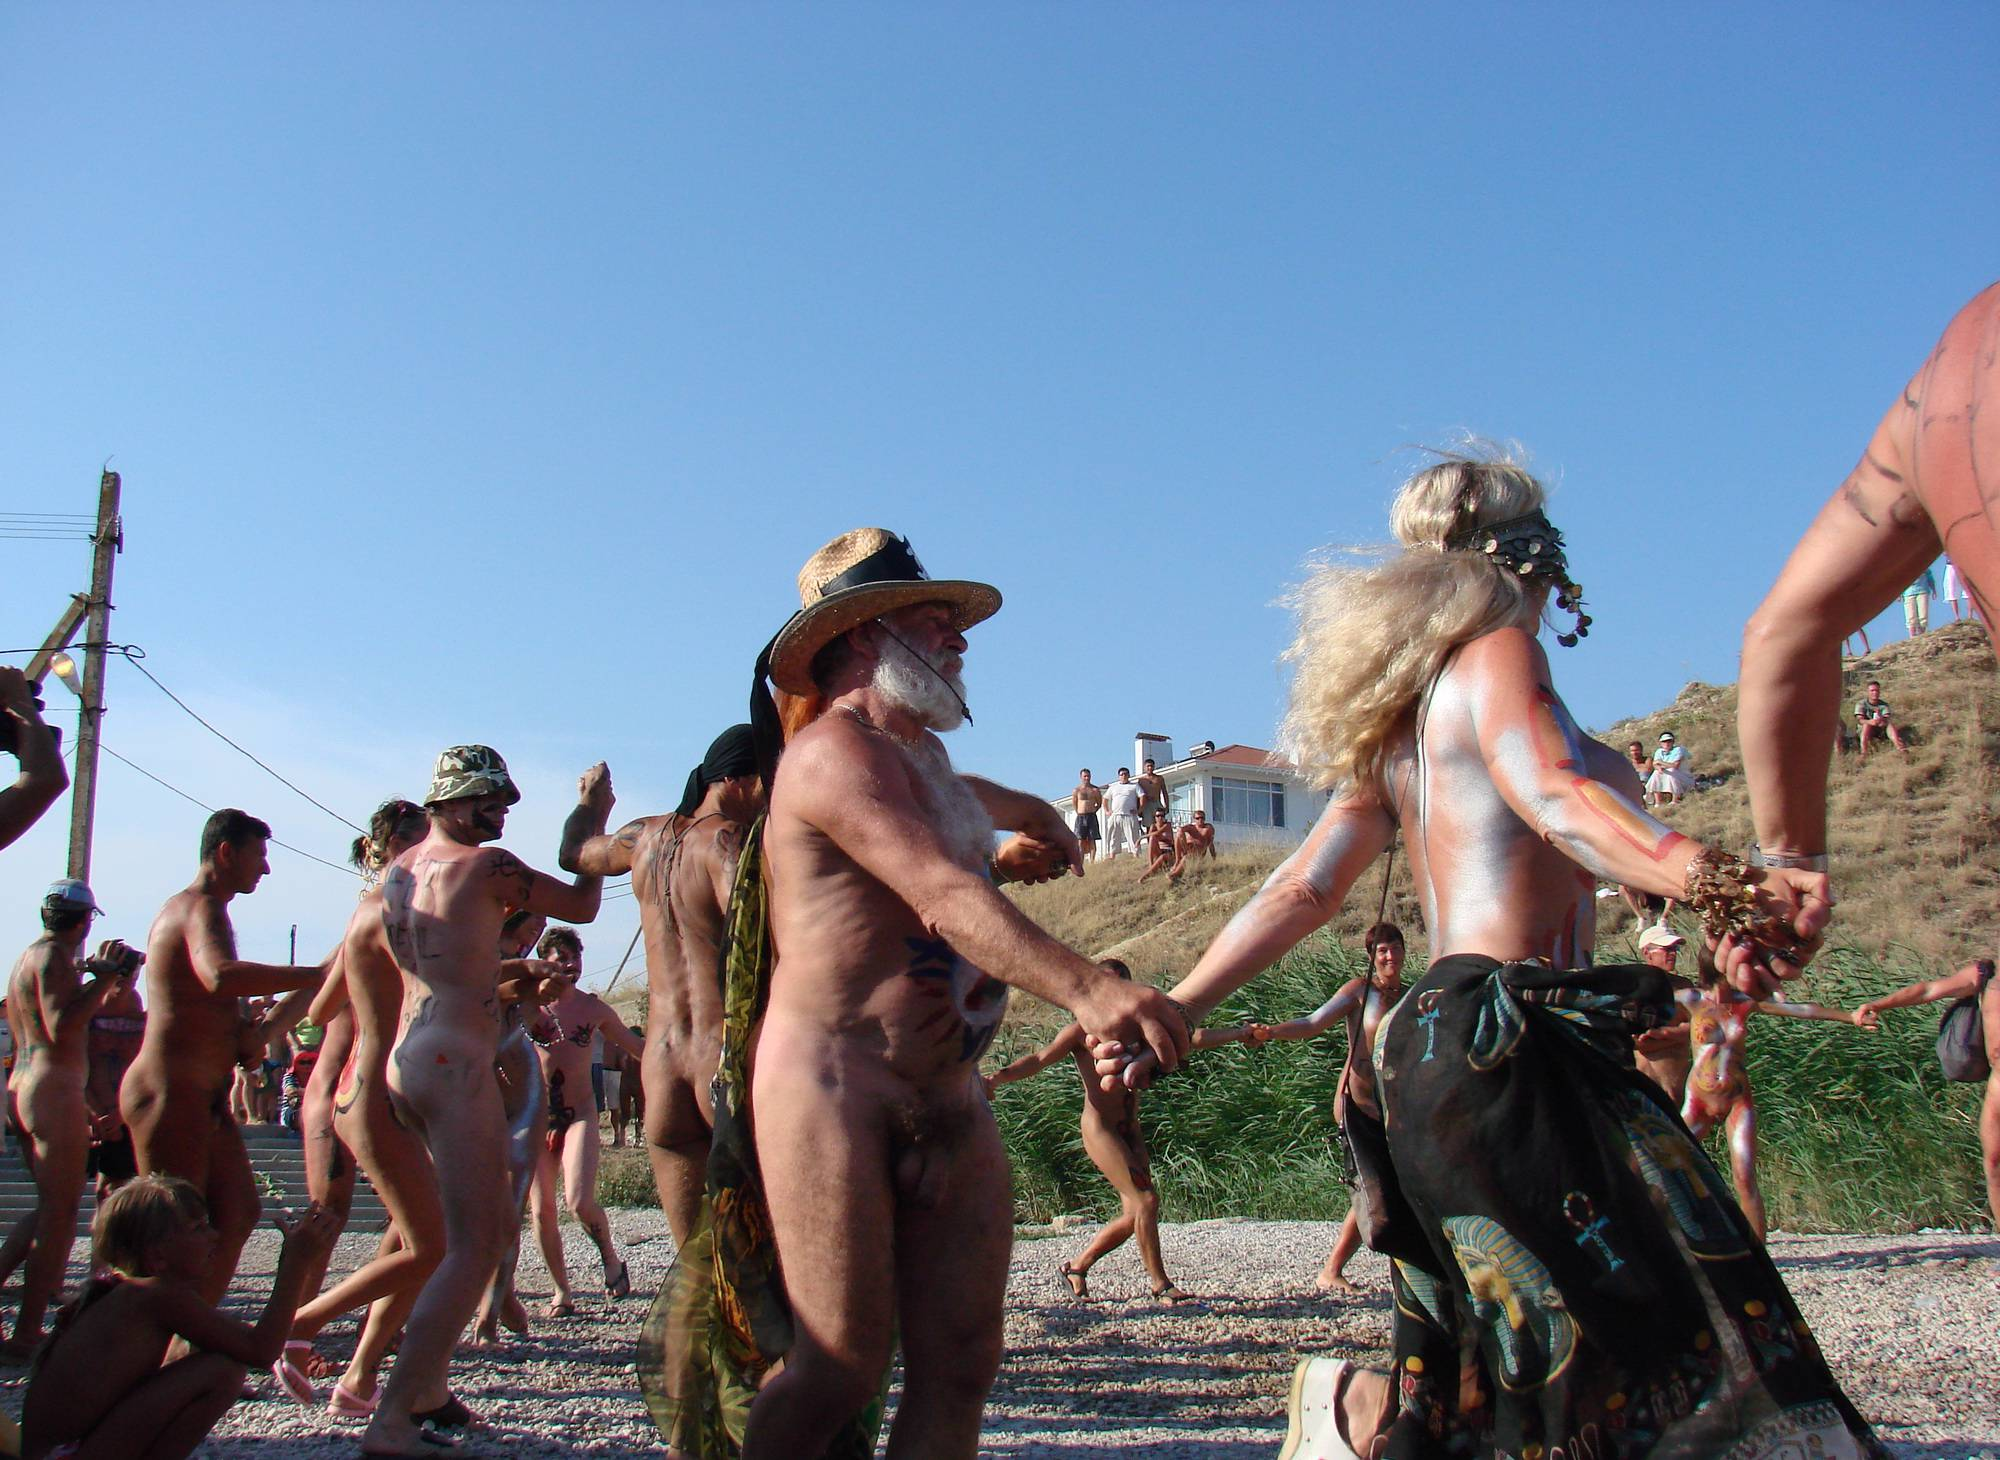 Nudist Pictures Neptune Day Dance Shot - 2